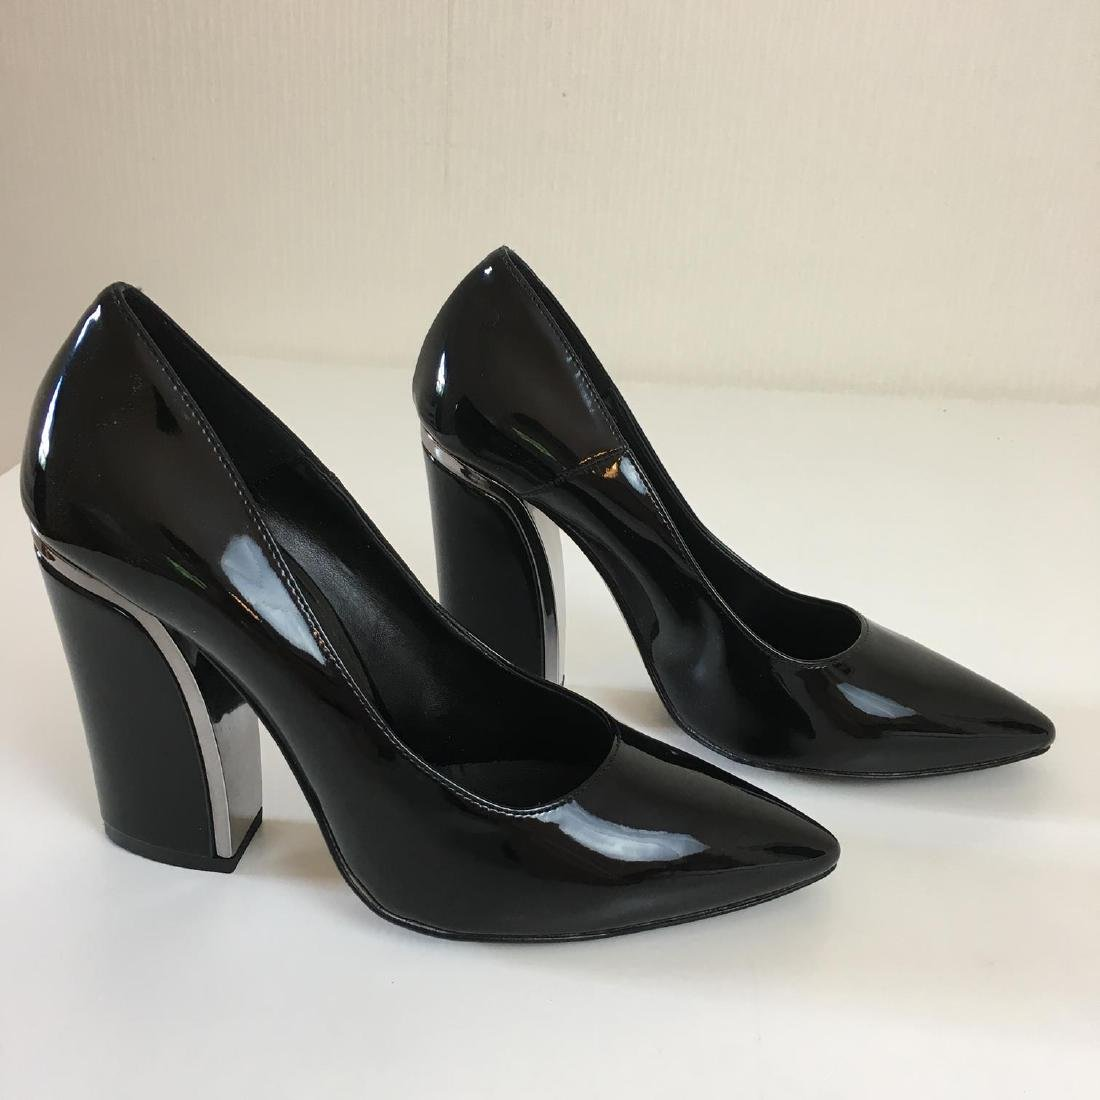 Ladies' VERSACE 1969 Black Court Shoes Pumps Heels